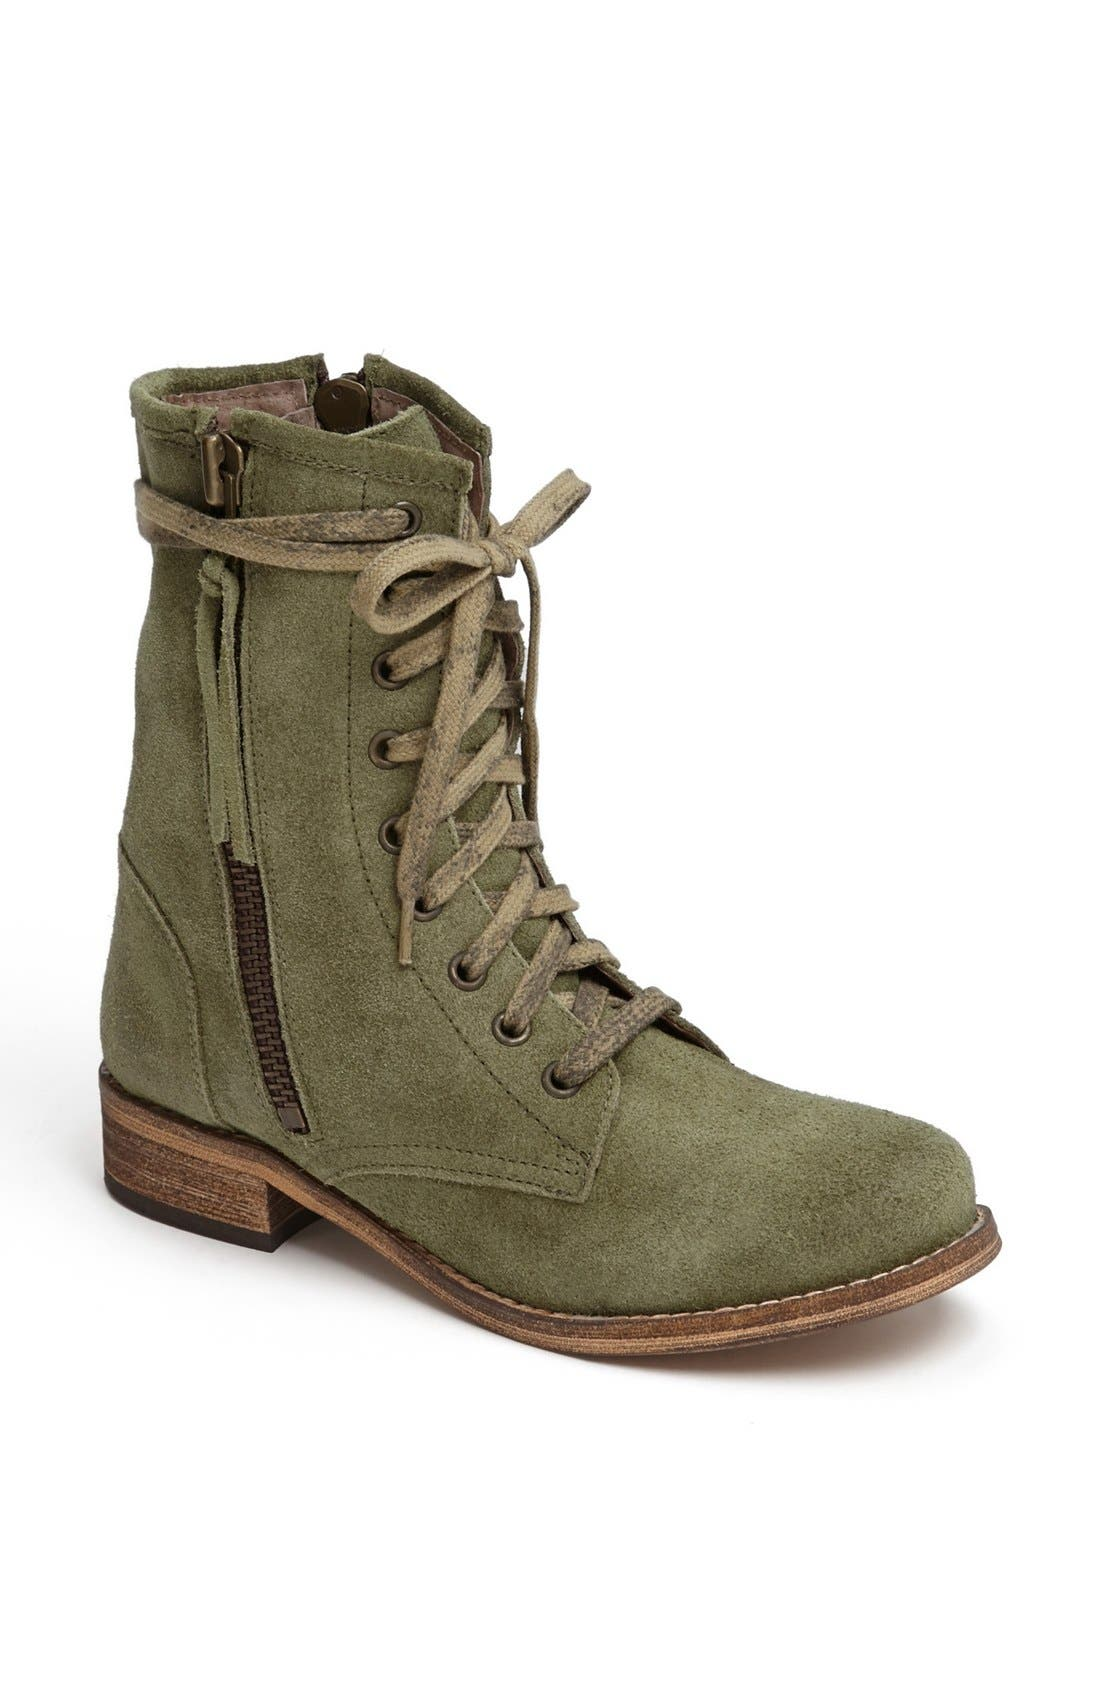 Alternate Image 1 Selected - MTNG Originals 'Hanna' Boot